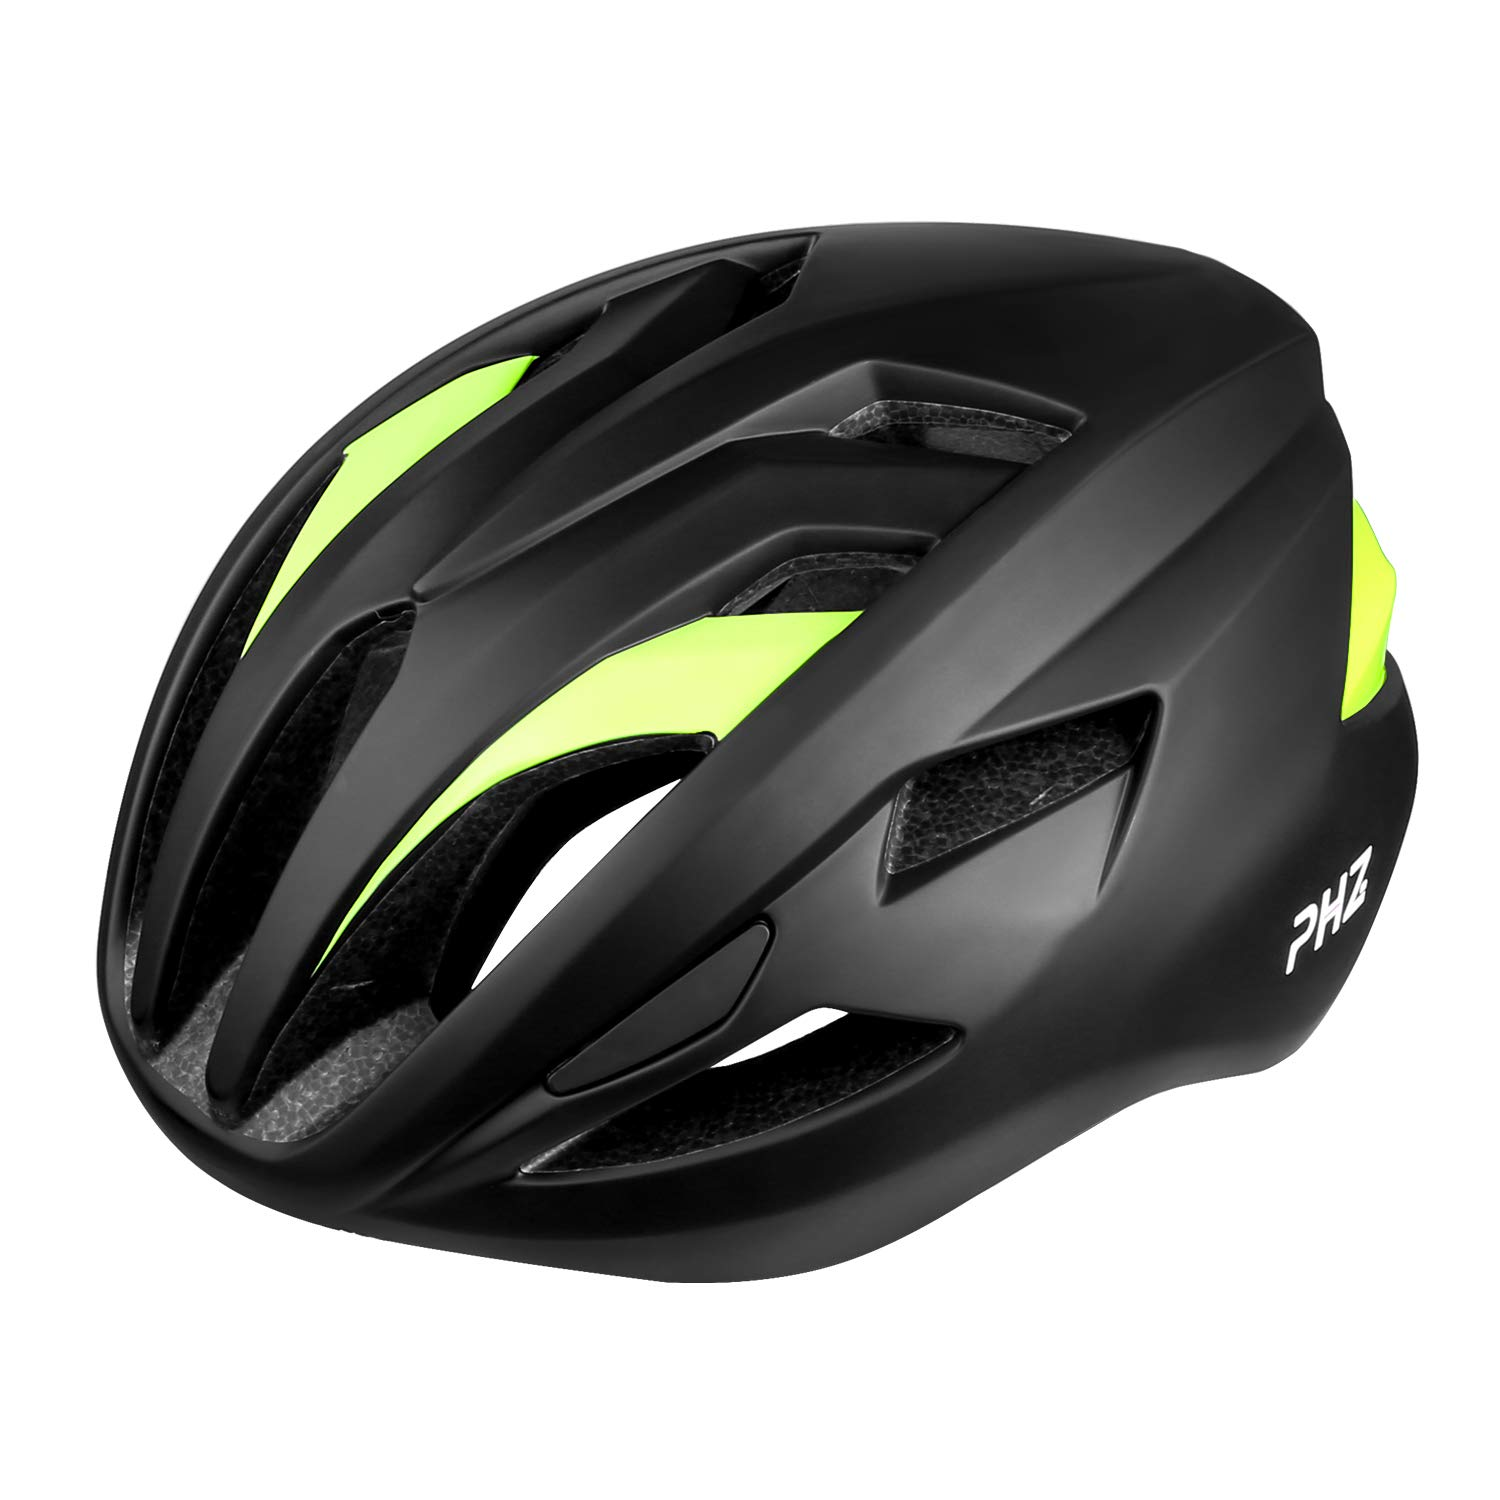 28a8e24e700 Amazon.com : PHZ CPSC Certified Bike Helmet with Adjustable System Ideal  for Bicycle Road Bike BMX Riding for Unisex Adult : Sports & Outdoors